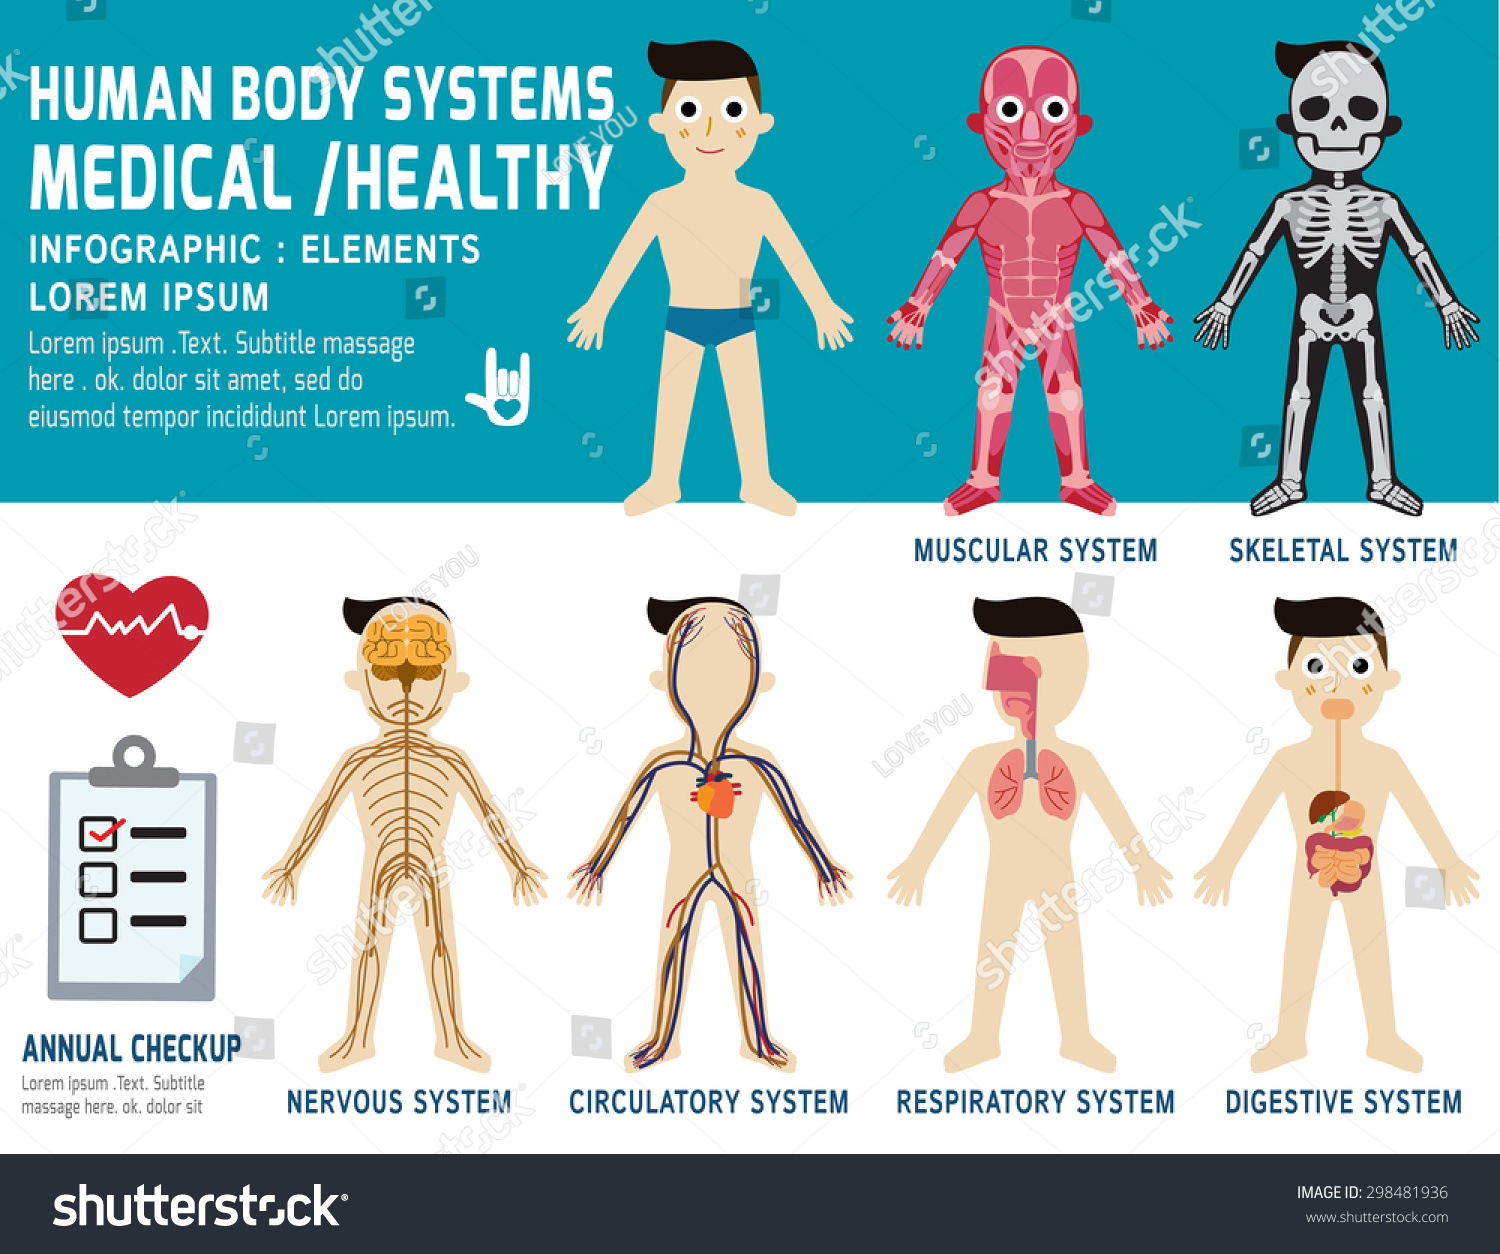 essay on the human body systems The main systems of the human body are: cardiovascular system / circulatory system: circulates blood around the body via the heart, arteries and veins, delivering.